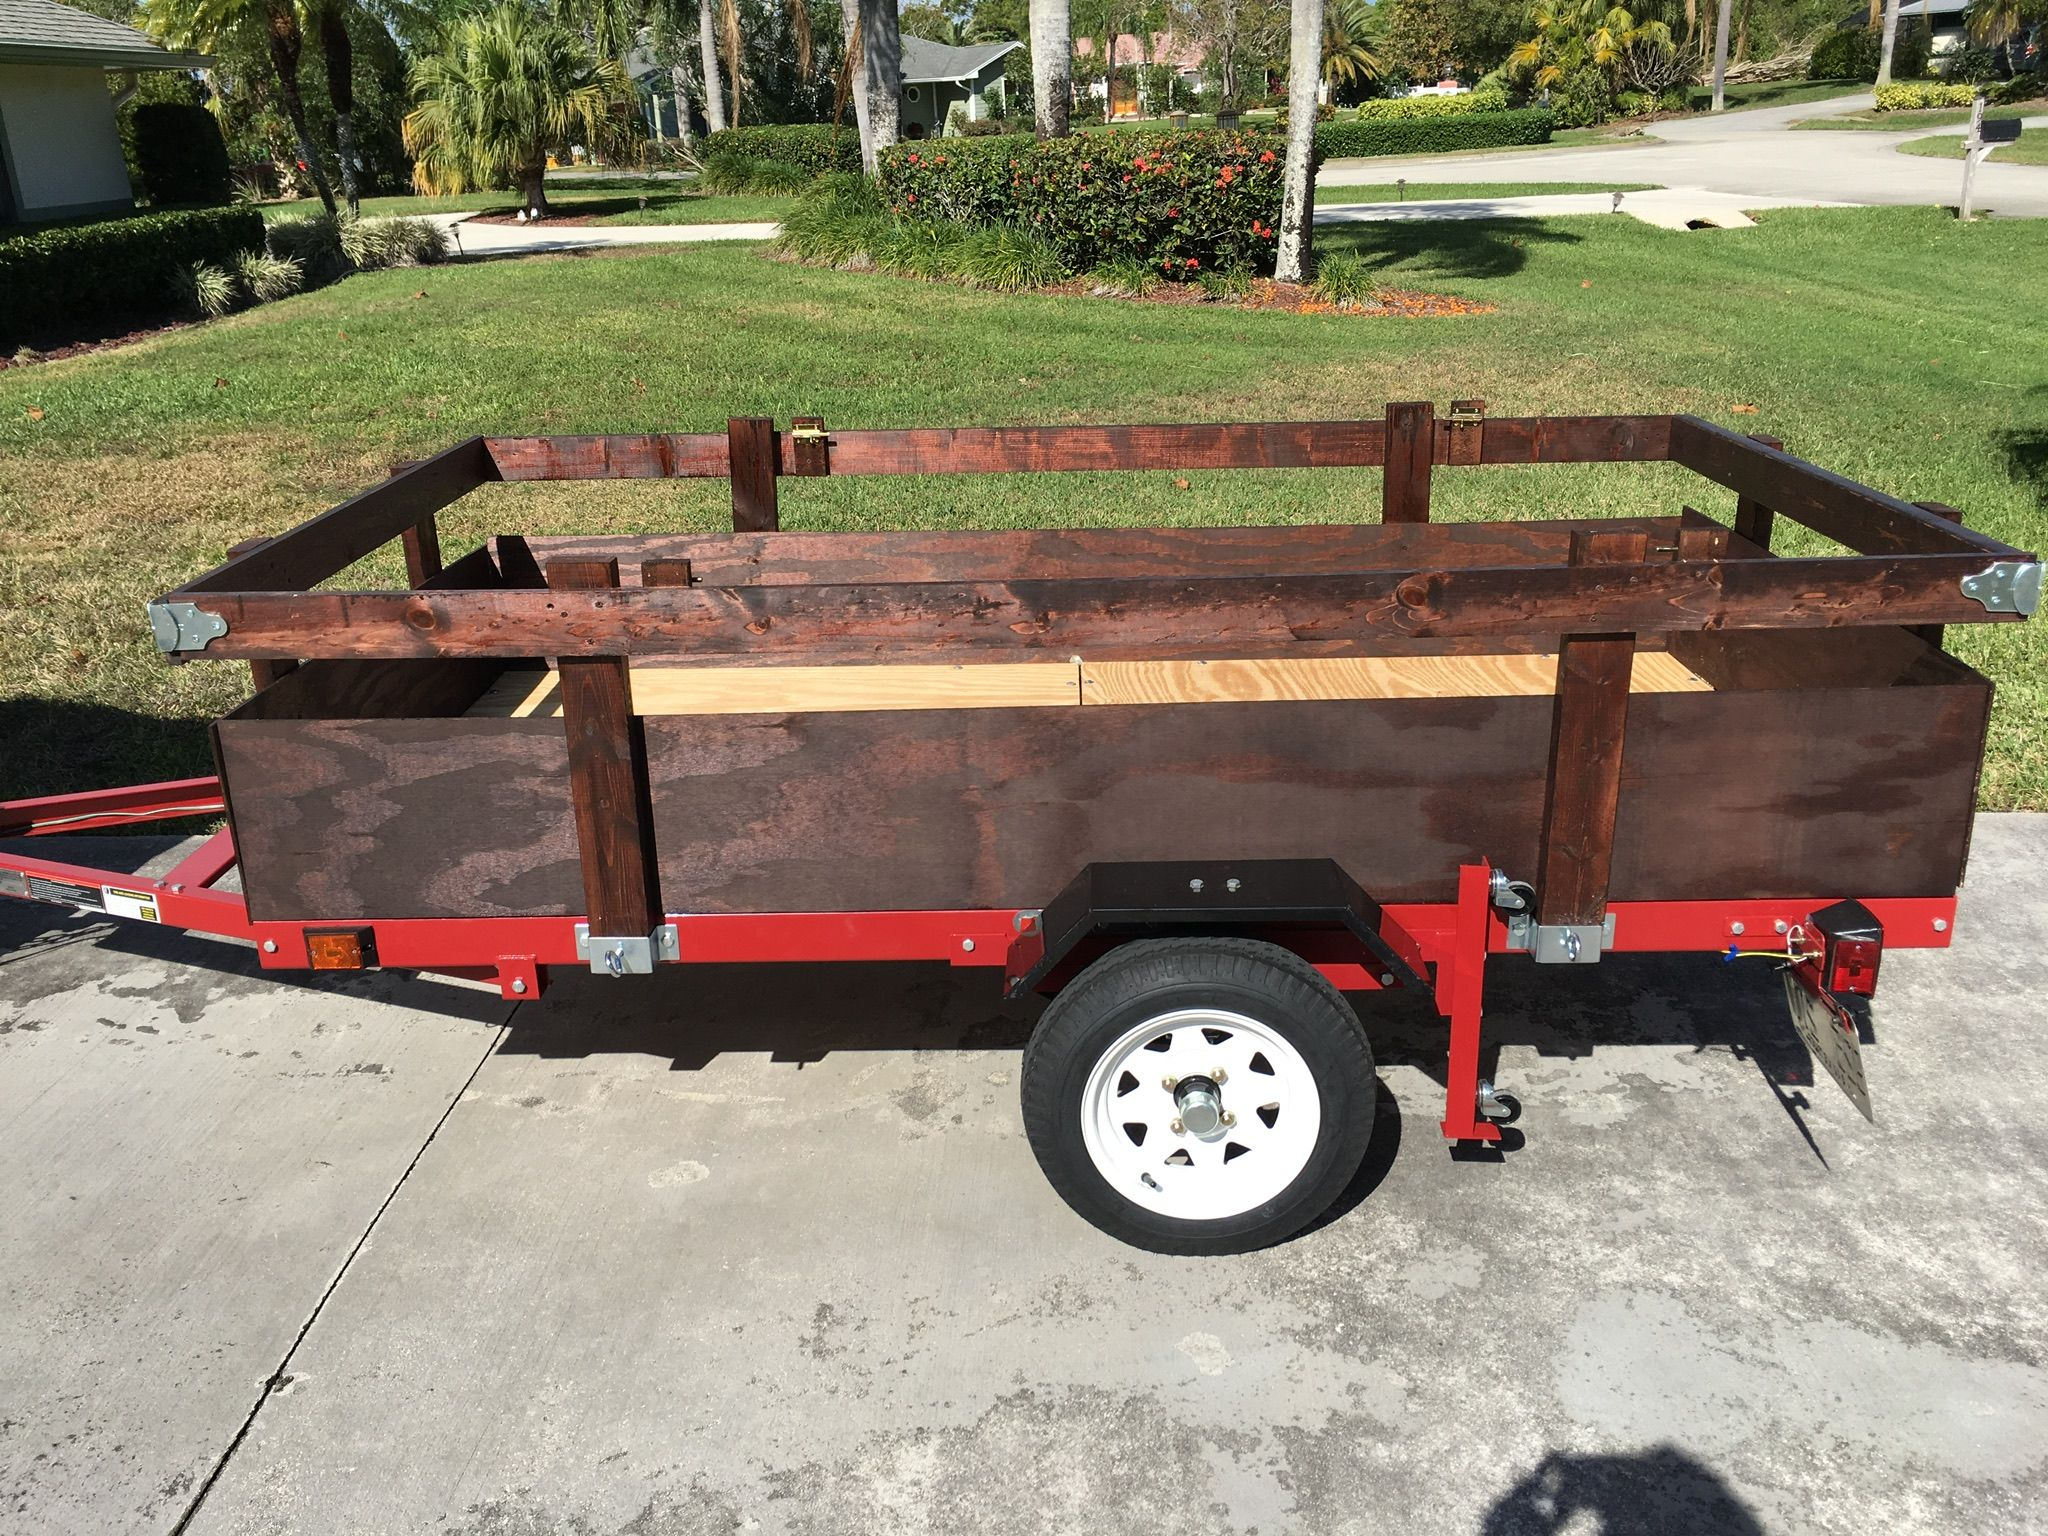 d7bb6f9f876a0dcbb46a8c8d260876cb my harbor freight trailer project finished! i wanted to ensure